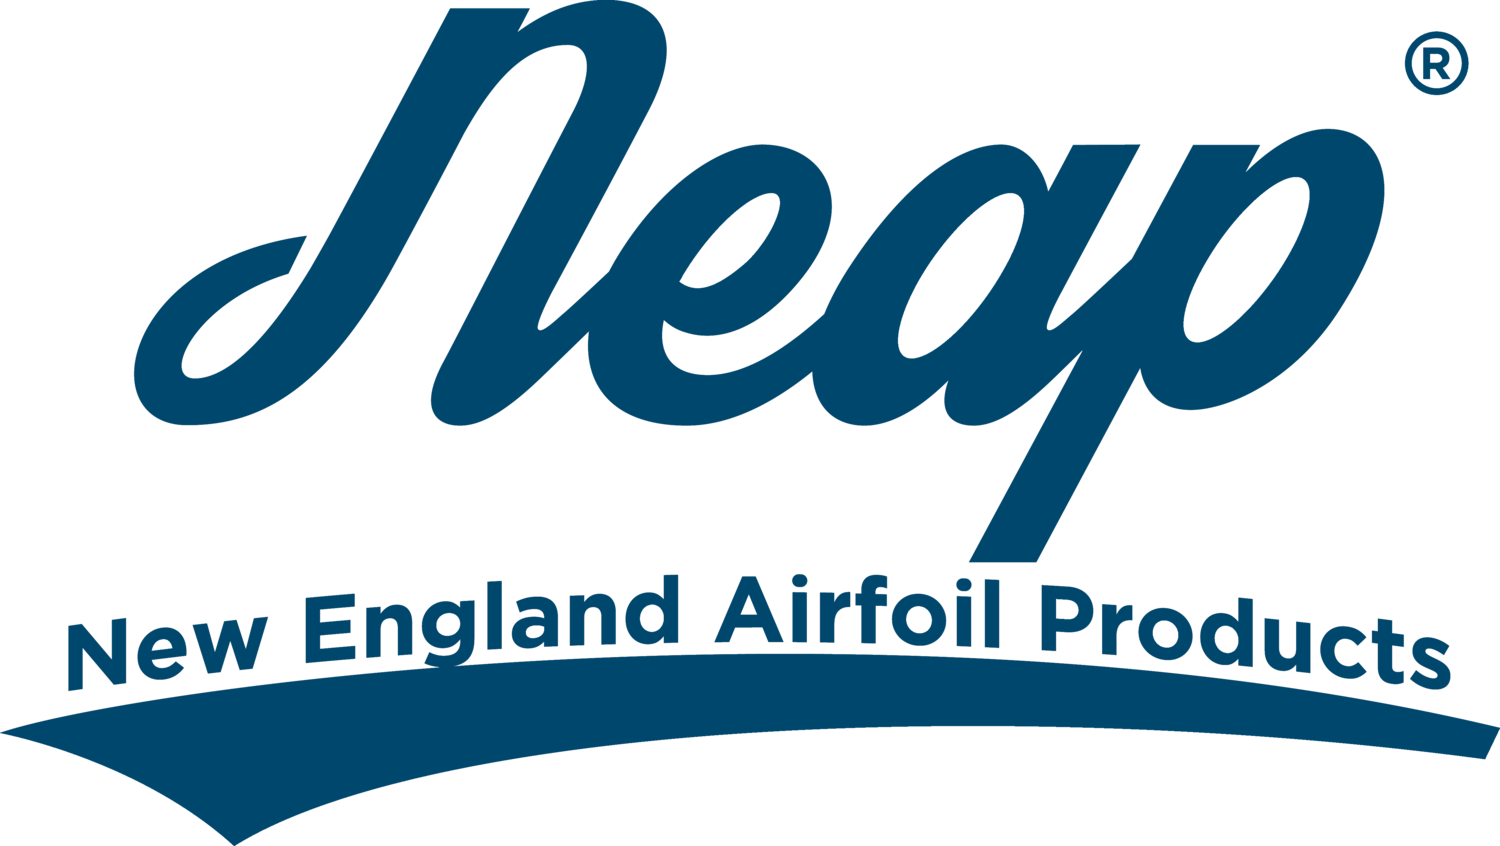 NEW ENGLAND AIRFOIL PRODUCTS, Inc.